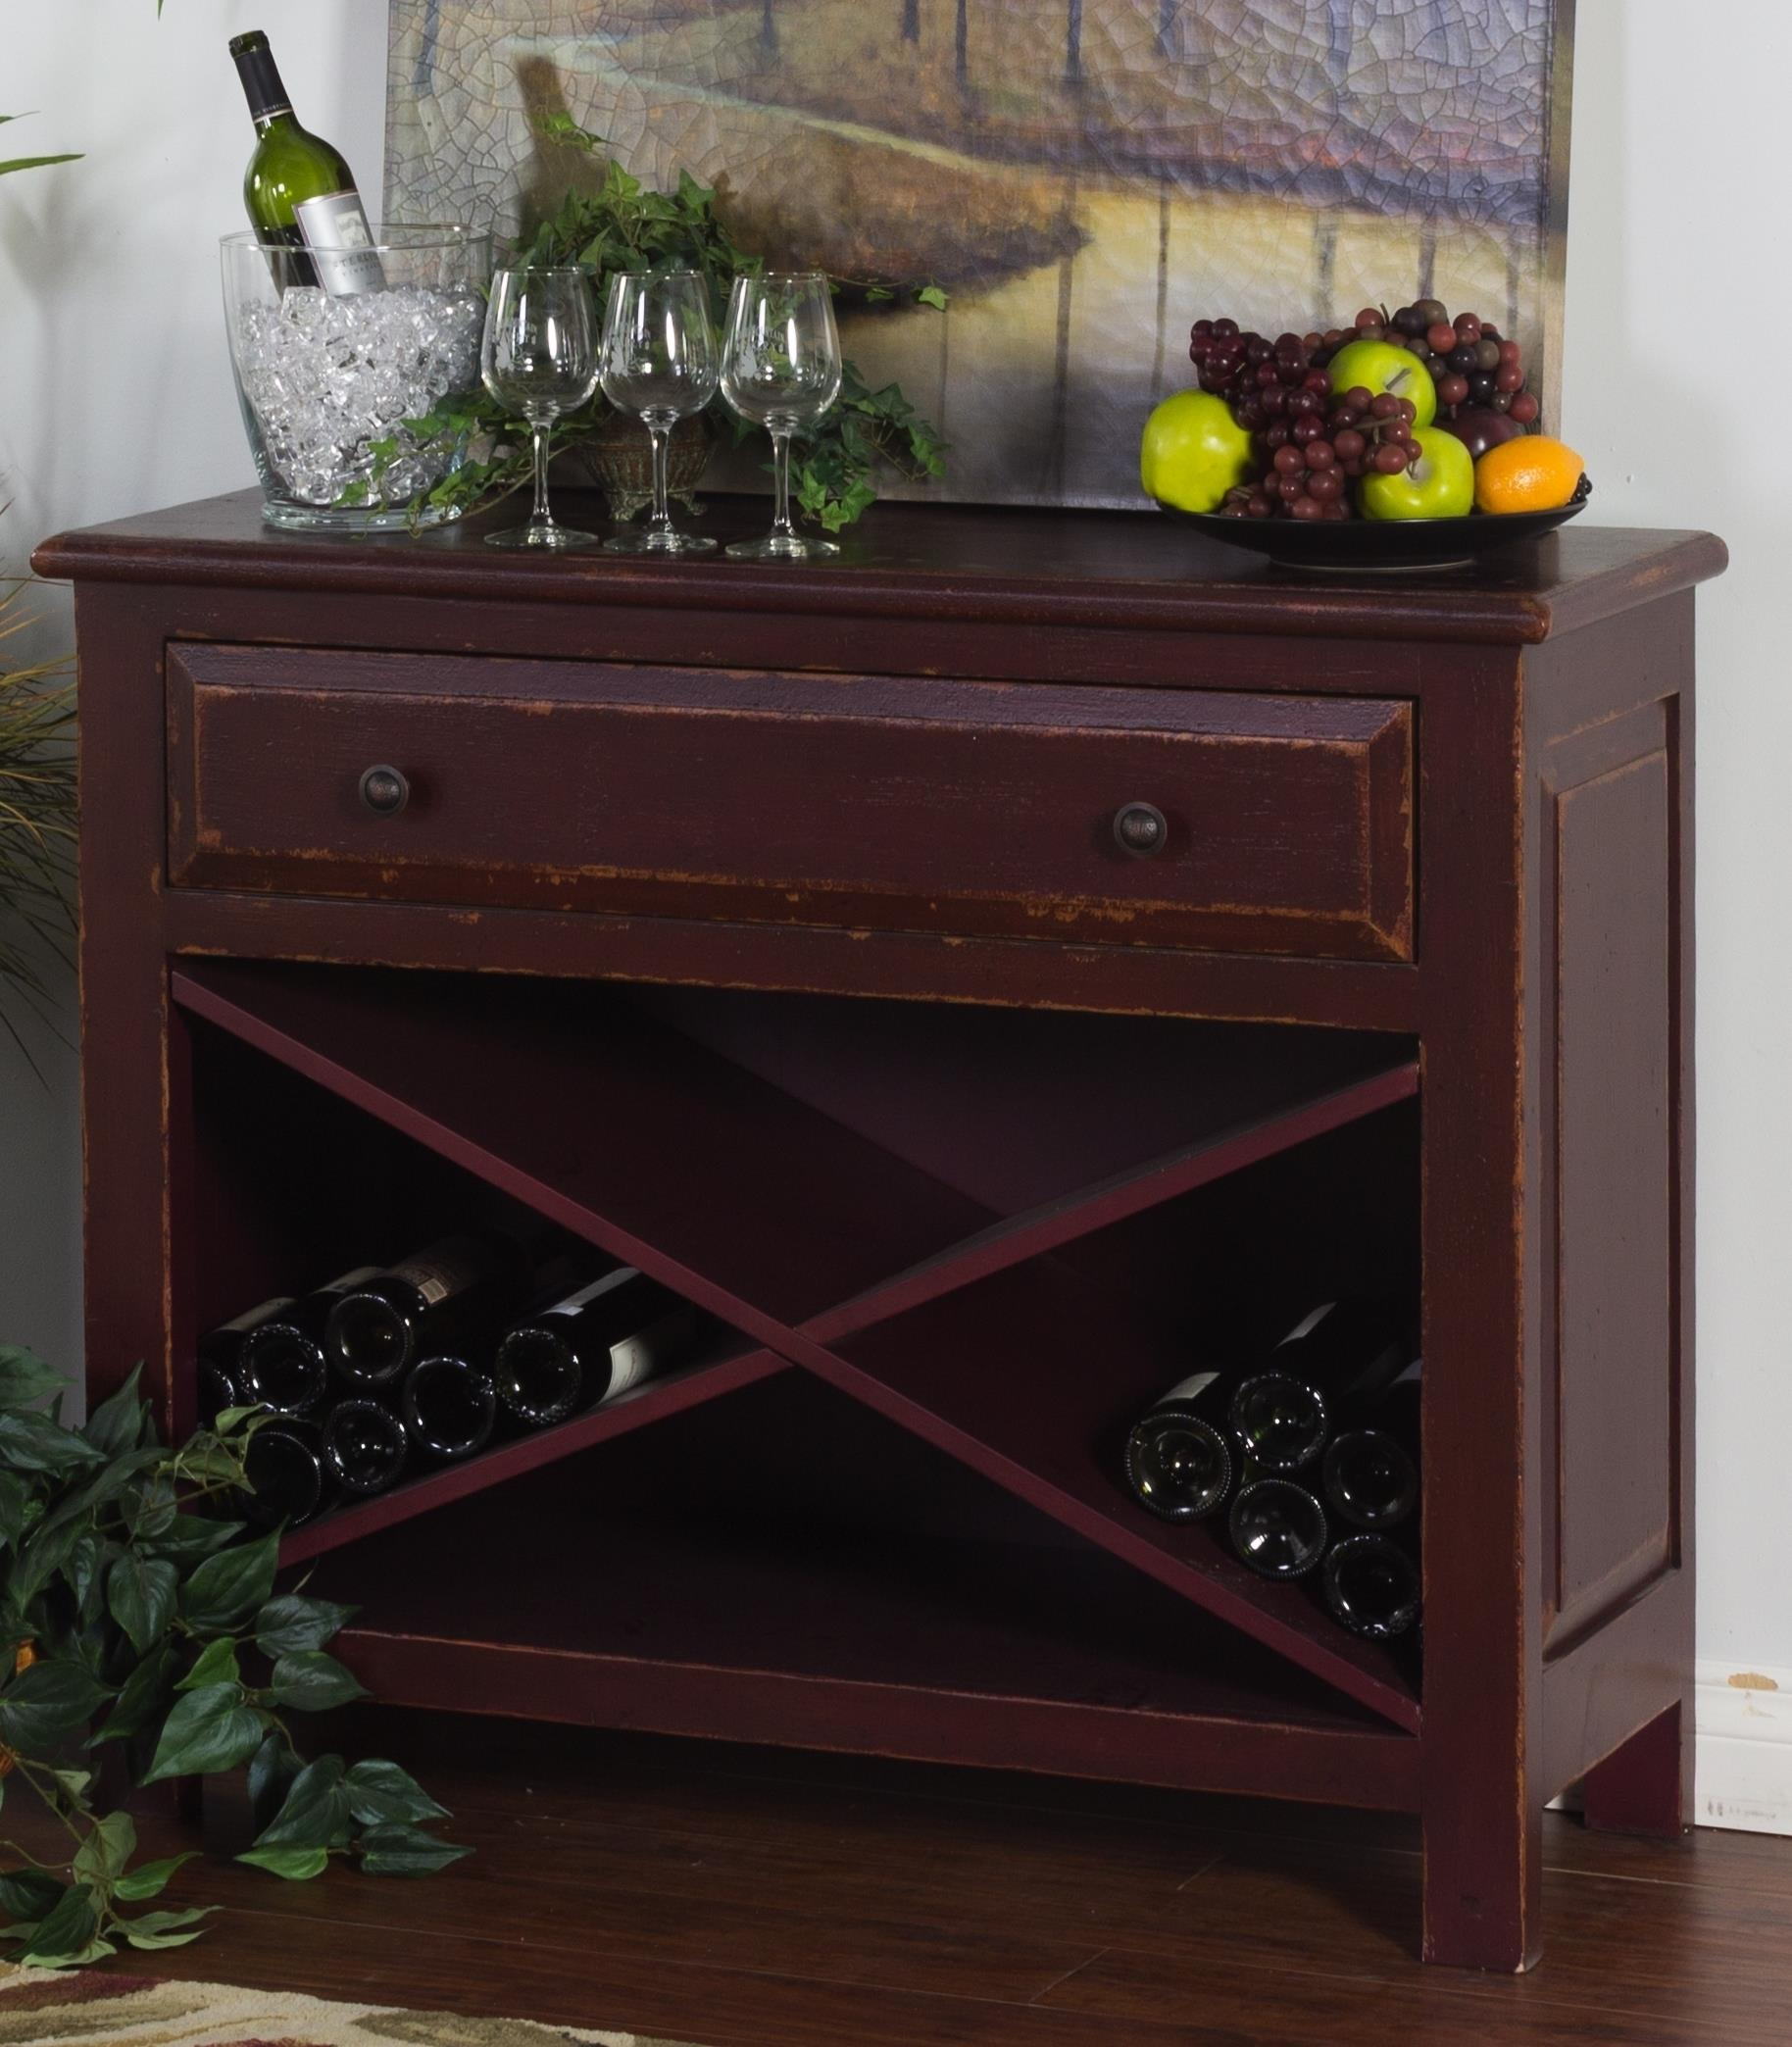 Sonoma Sonoma Accent Chest with Wine Storage by Sunny Designs at Morris Home